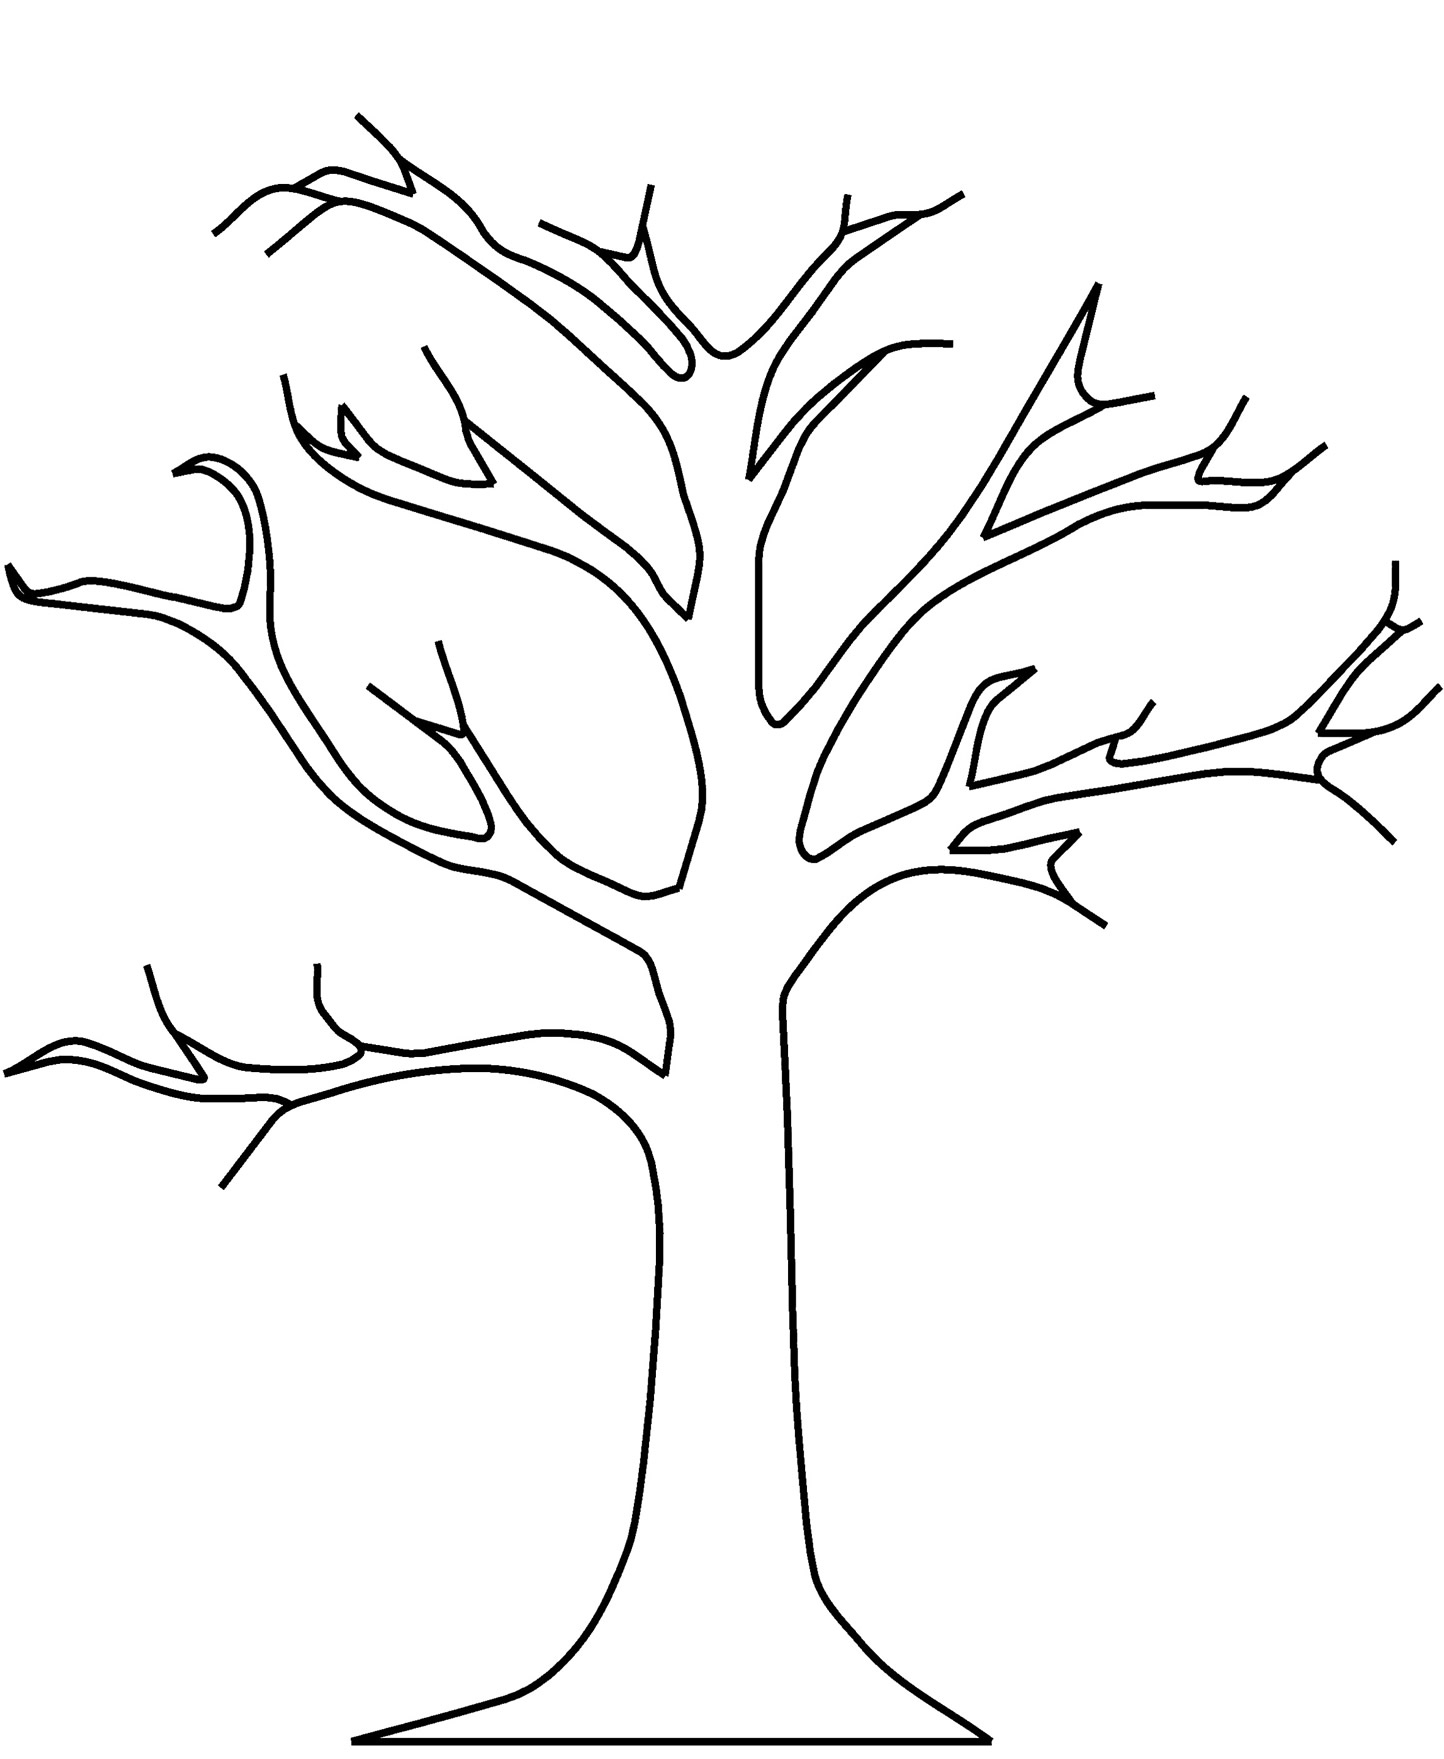 Willow Coloring Pages At Getcolorings